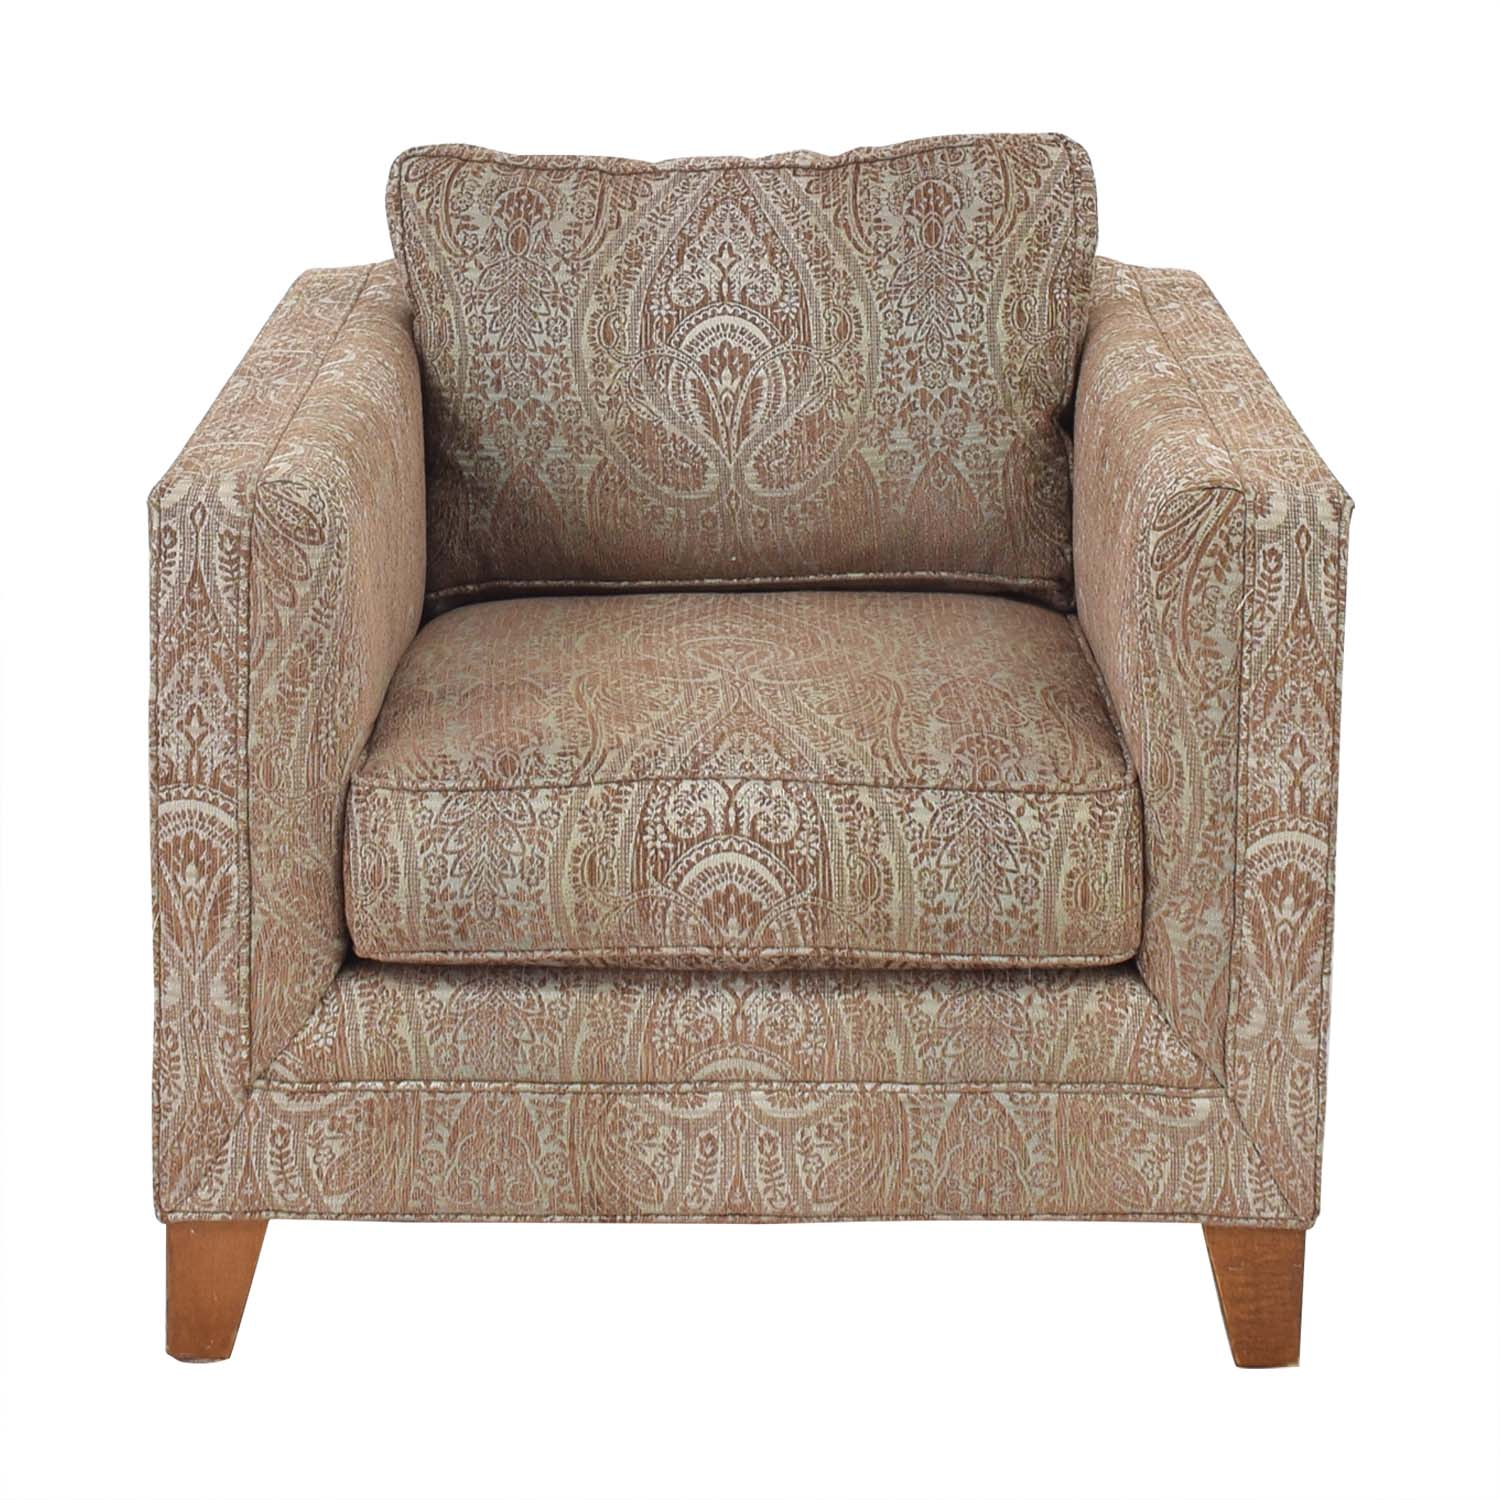 Crate & Barrel Crate & Barrel by Mitchell Gold + Bob Williams Paisley Print Club Chair coupon